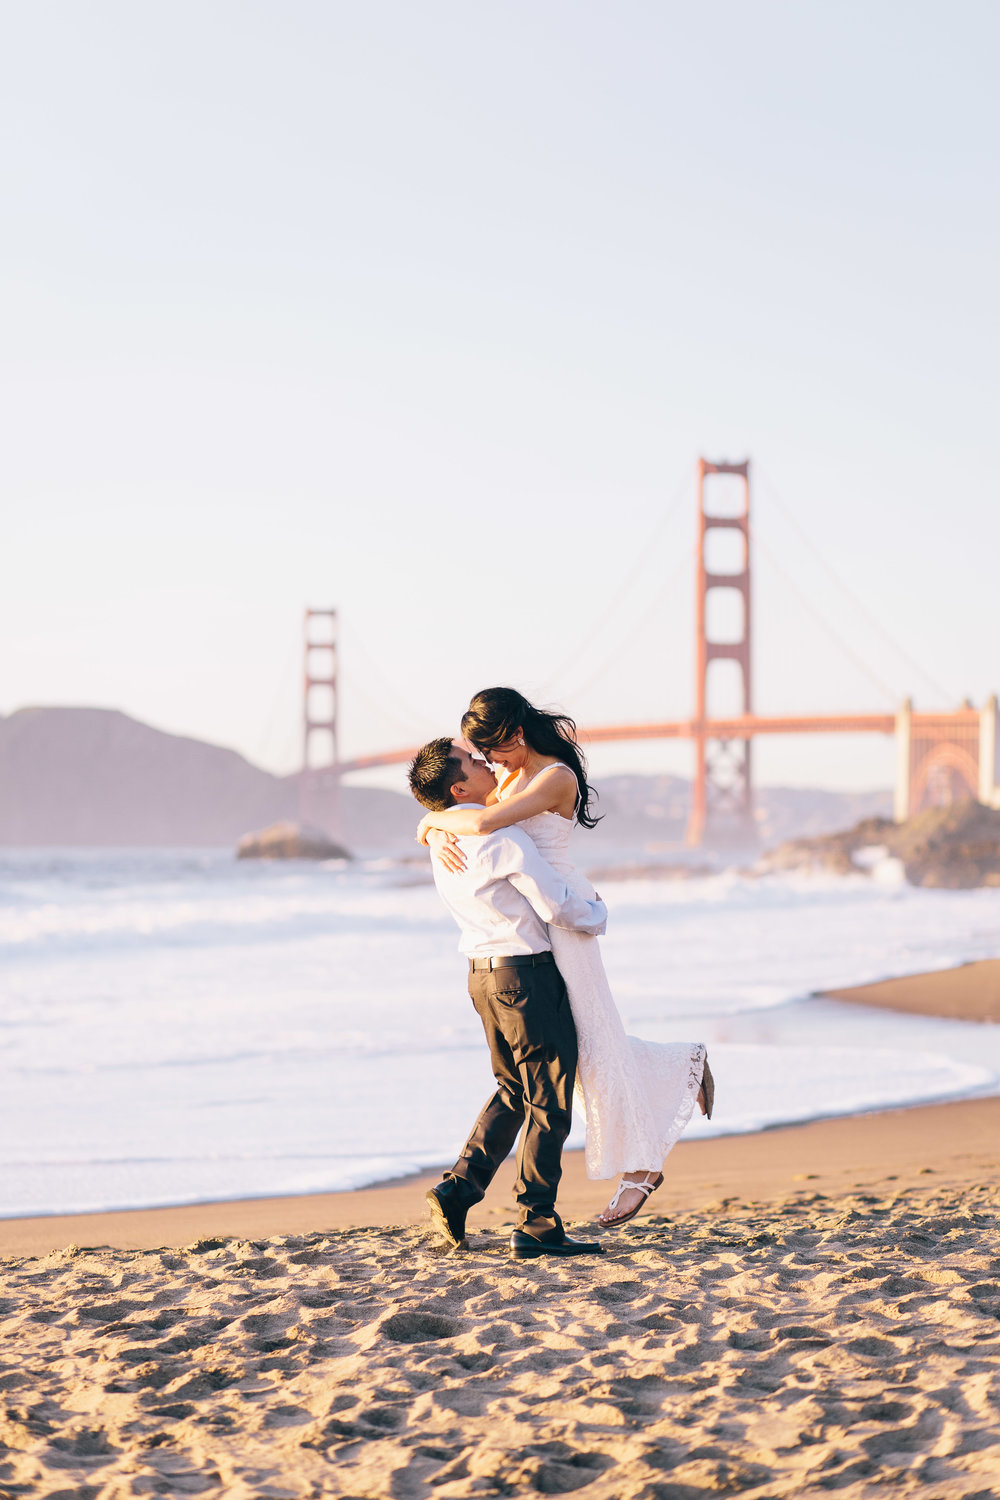 Best Engagement Photo Locations in San Francisco - Baker Beach Engagement Photos by JBJ Pictures (18).jpg